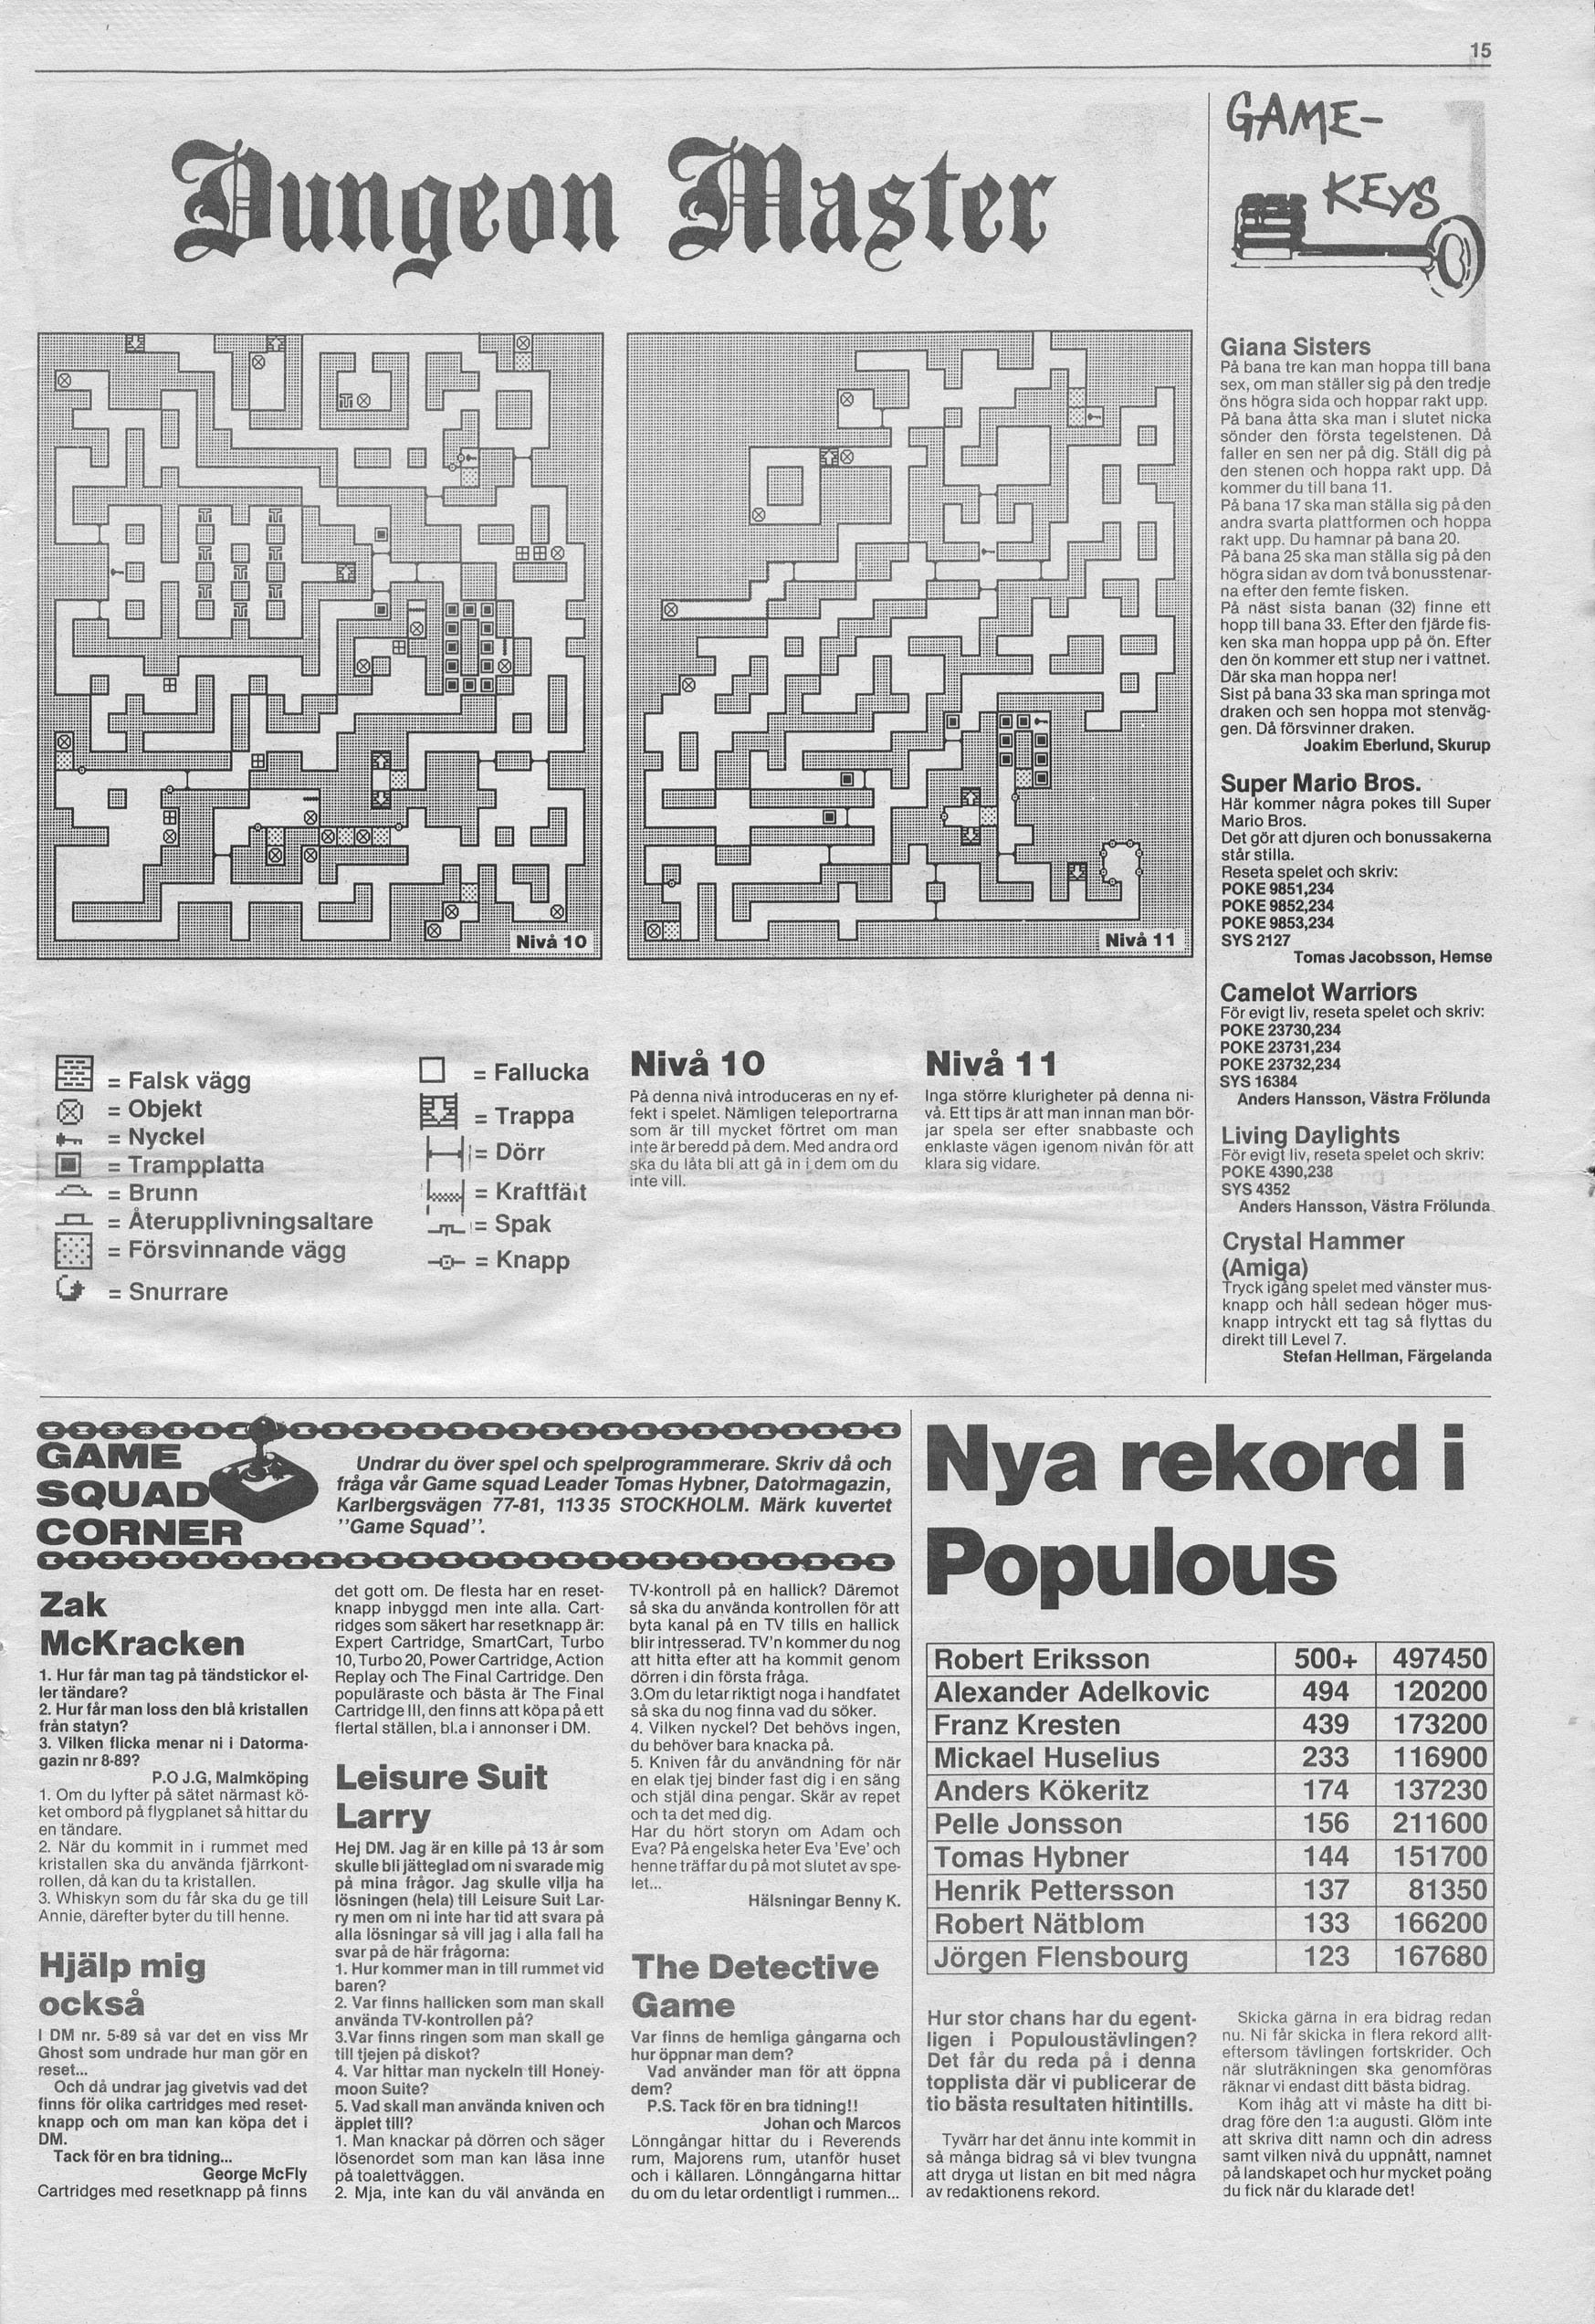 Dungeon Master Hints published in Swedish magazine 'Datormagazin', Vol. 1989 No. 10, July 1989, Page 15